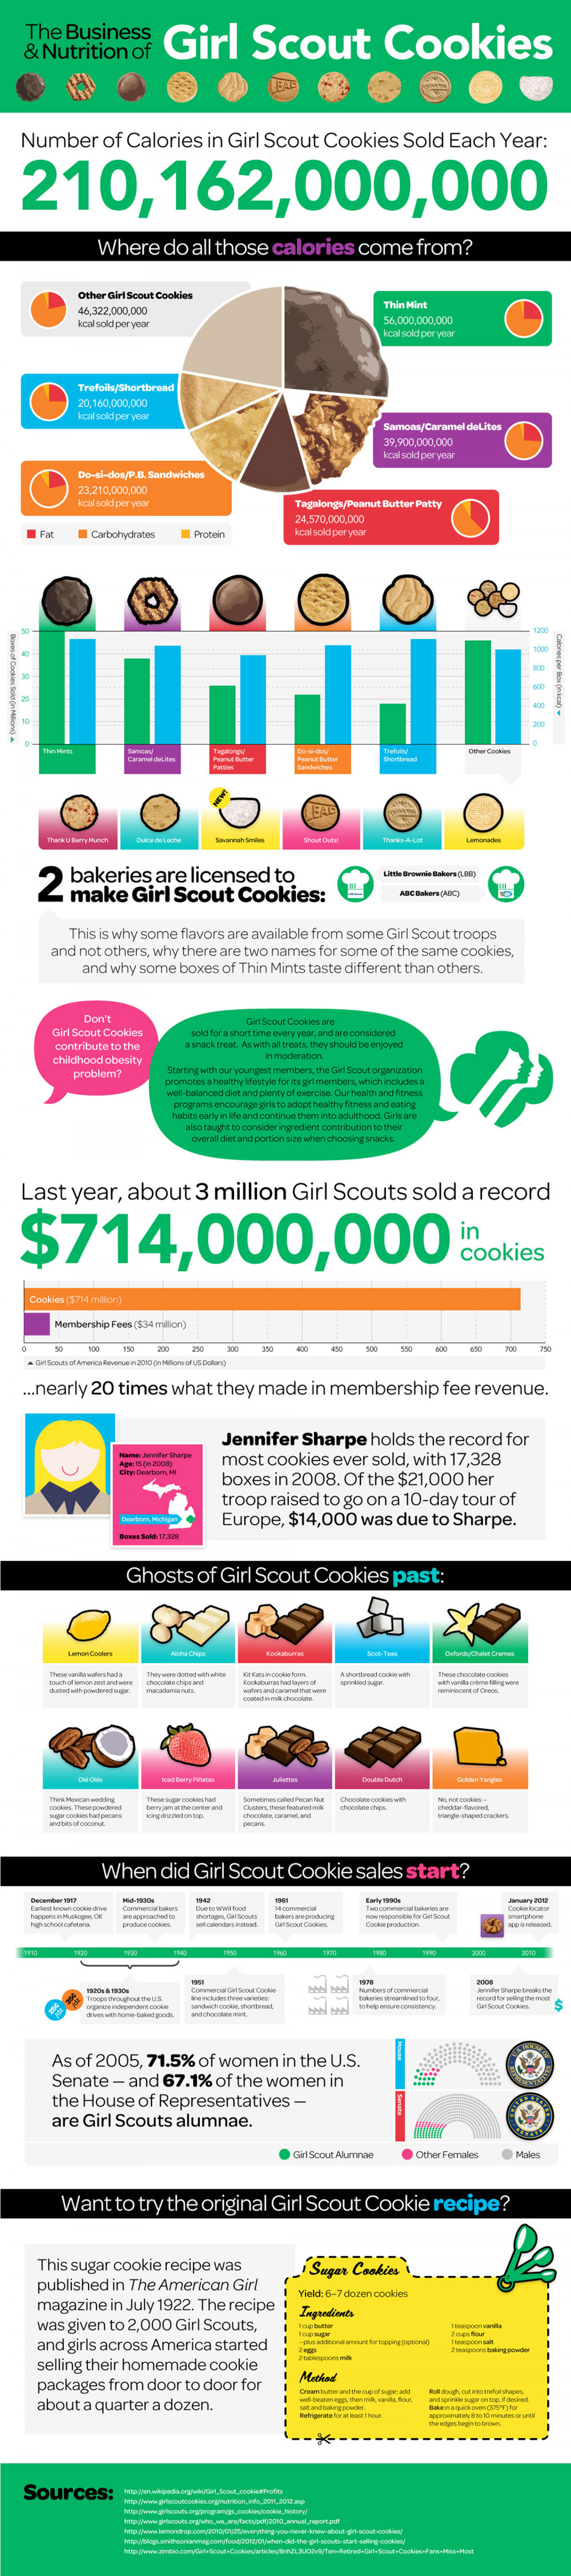 The Business and Nutrition of Girl Scout Cookies Infographic